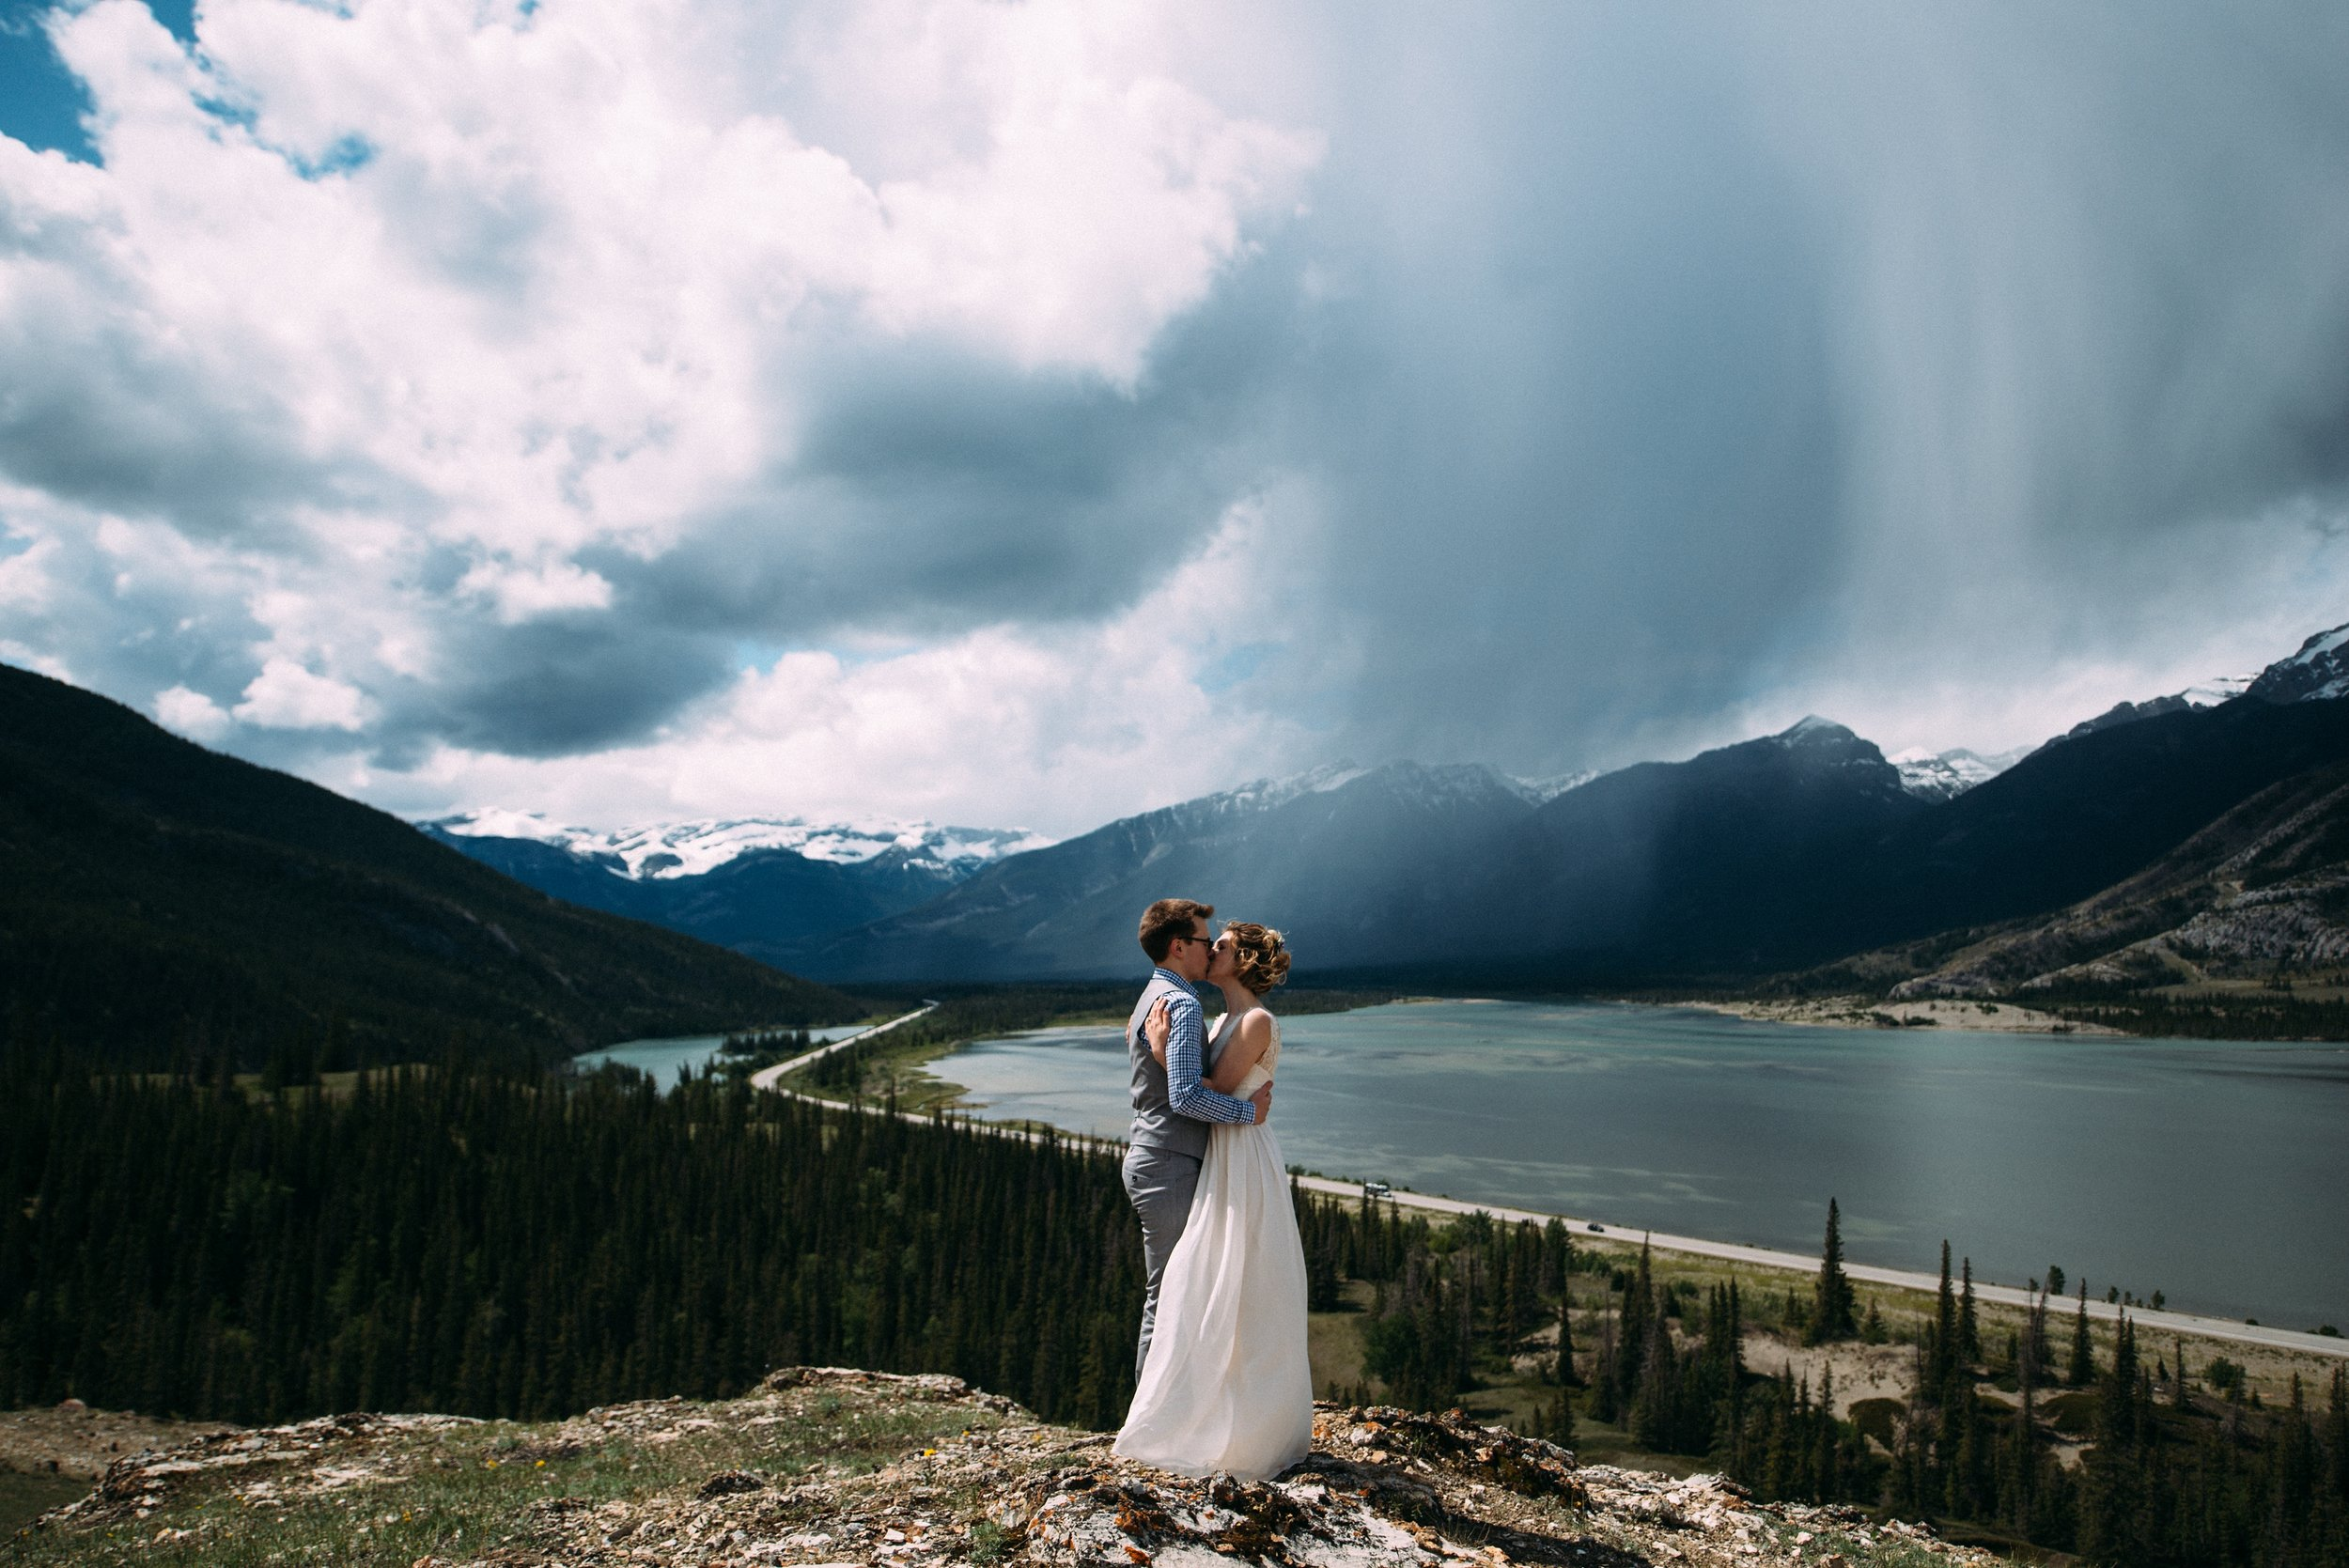 kaihla_tonai_intimate_wedding_elopement_photographer_3849